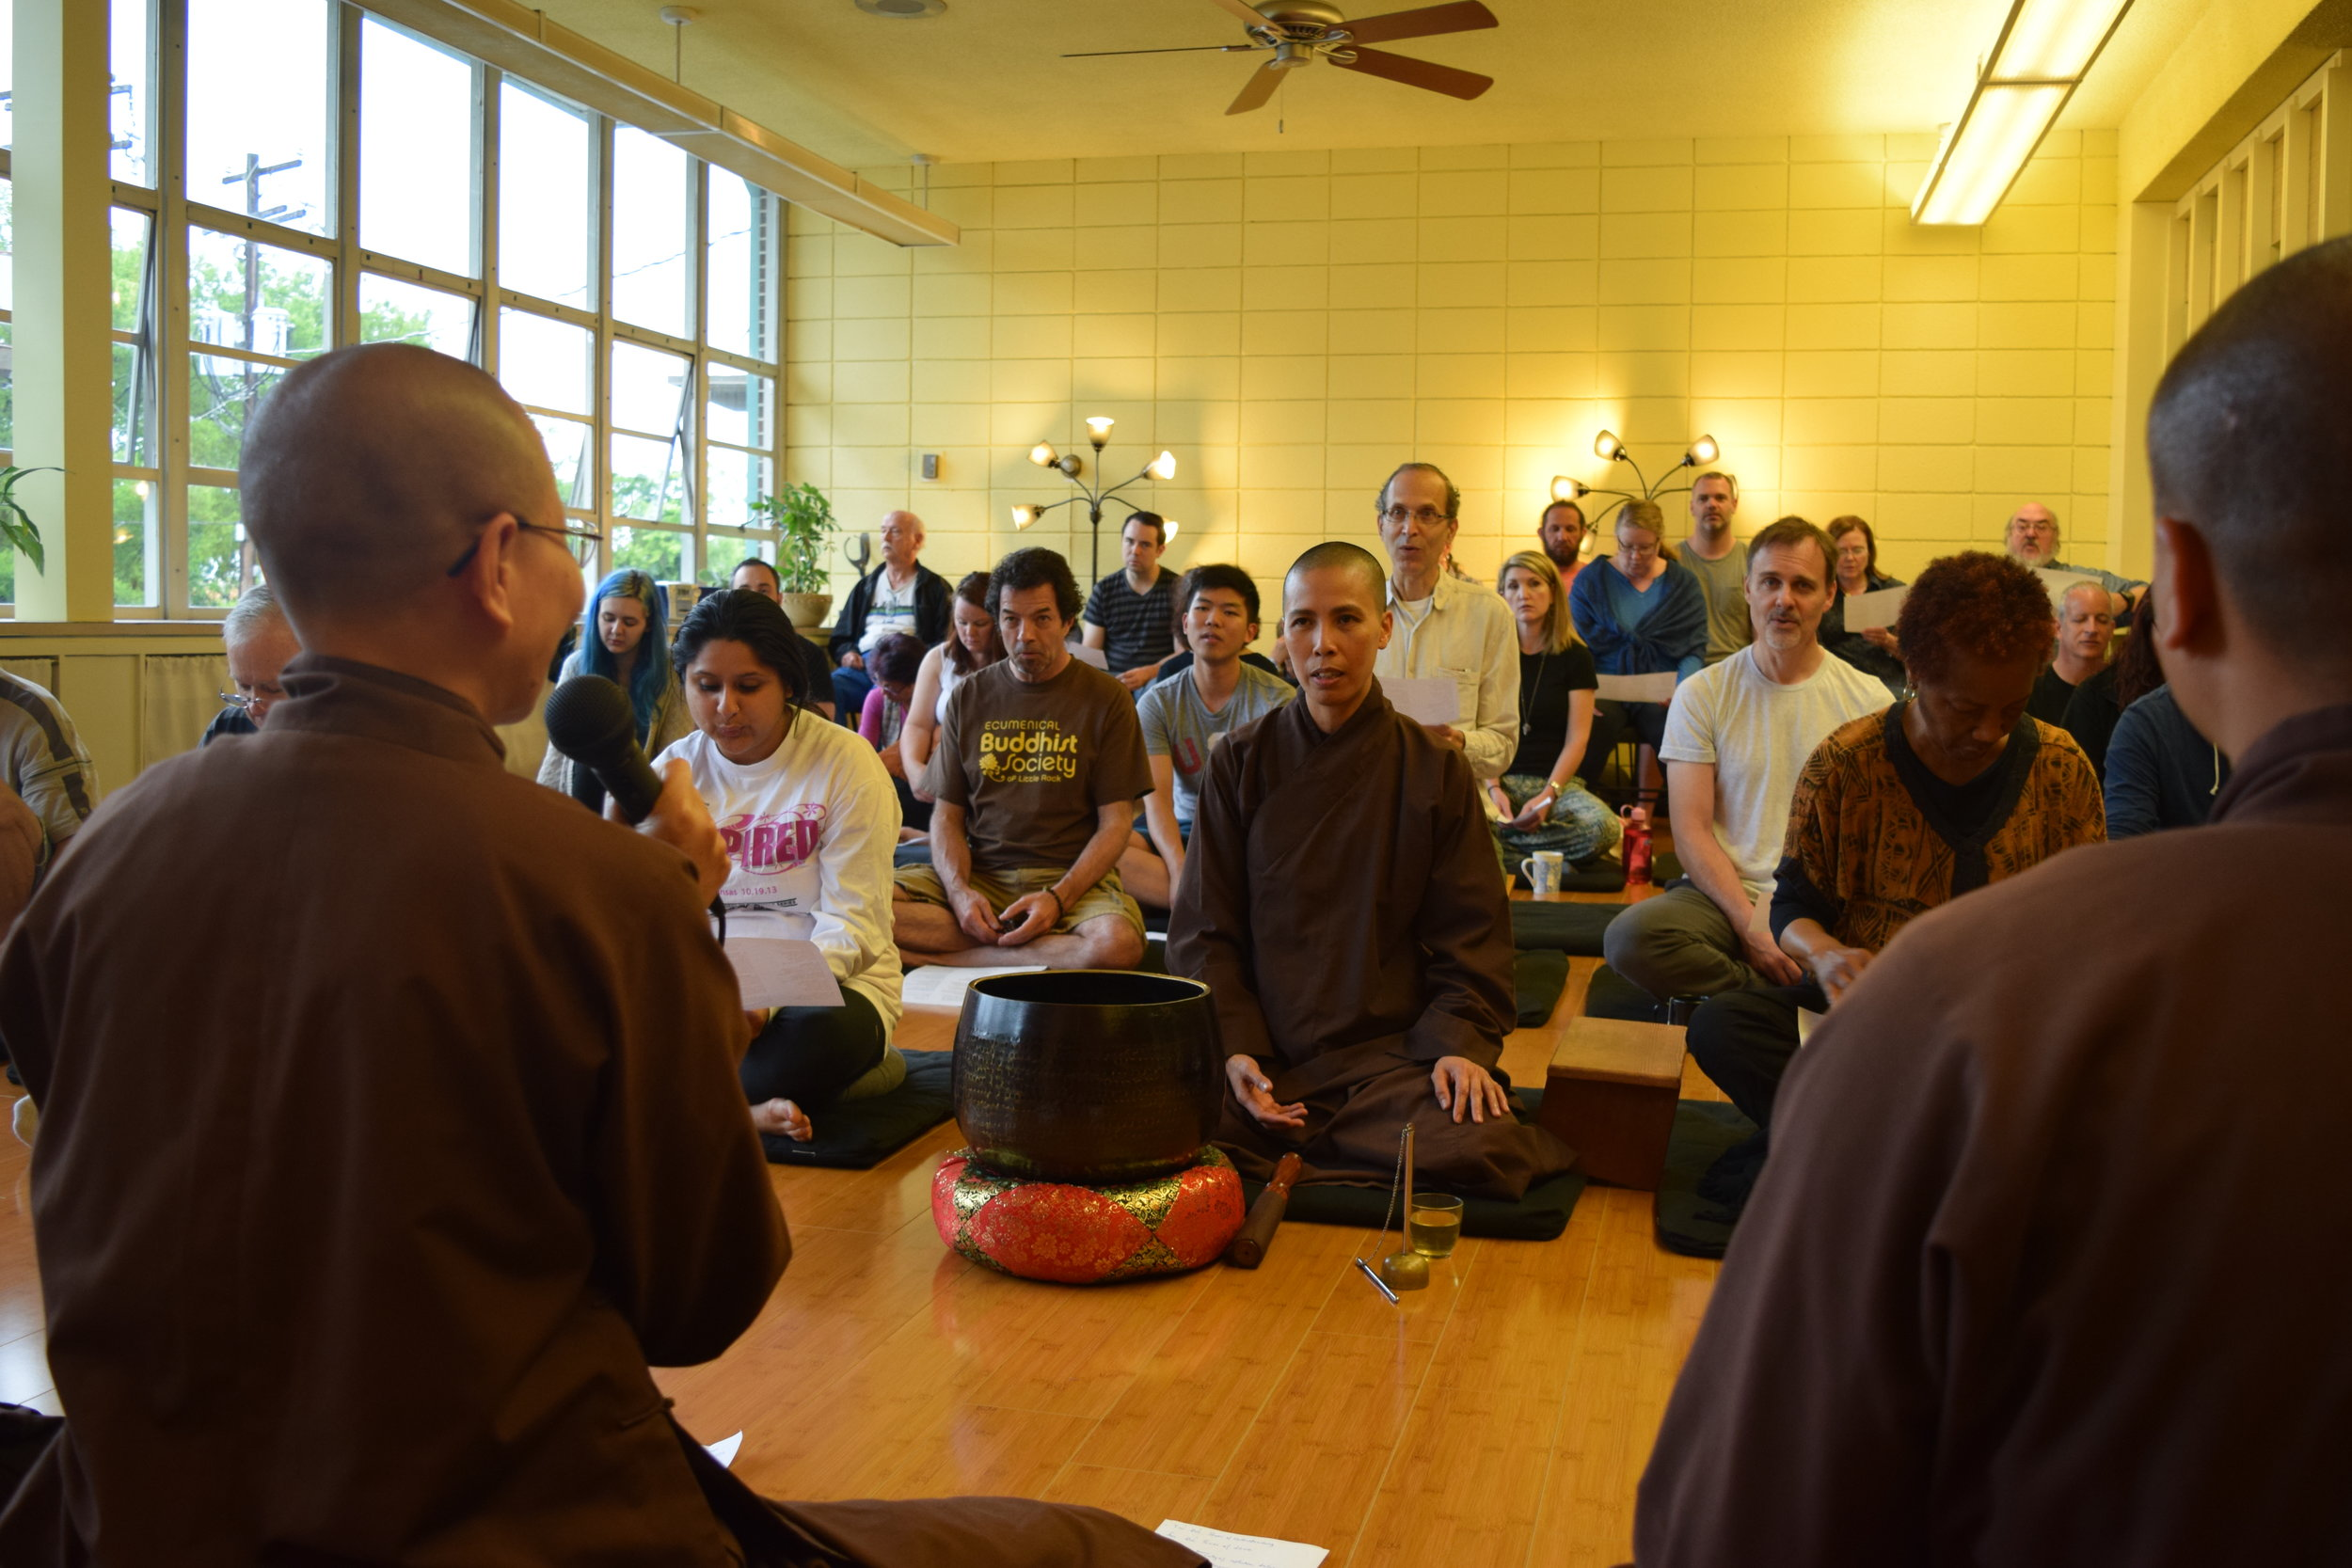 River Valley Sangha Day of Mindfulness - River Valley Sangha used grant funding to bring Dharma teachers to host a Day of Mindfulness in Little Rock, Arkansas.